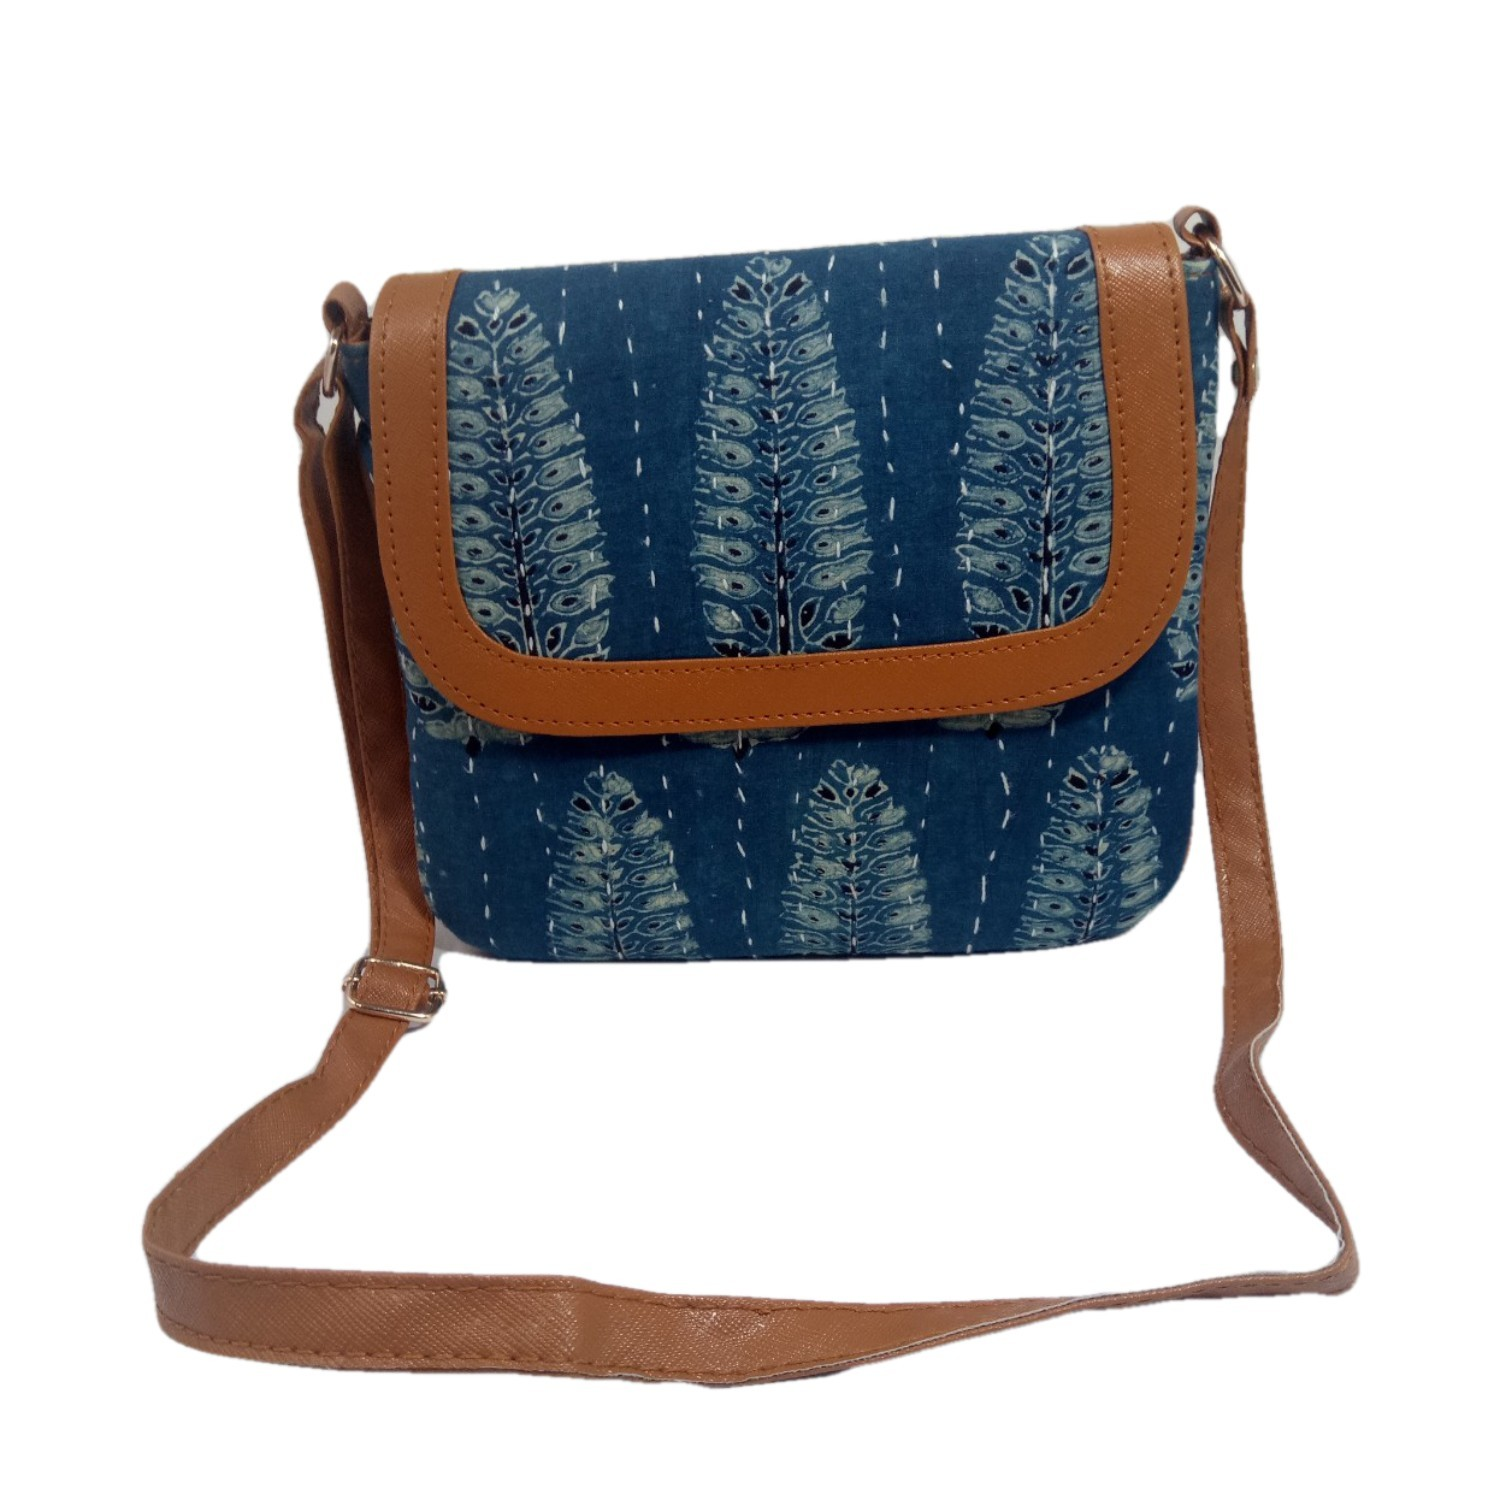 Handmade Excellent Blue Genuine Clutch or Shoulder Bag by Women Self Help Groups of Rajasthan